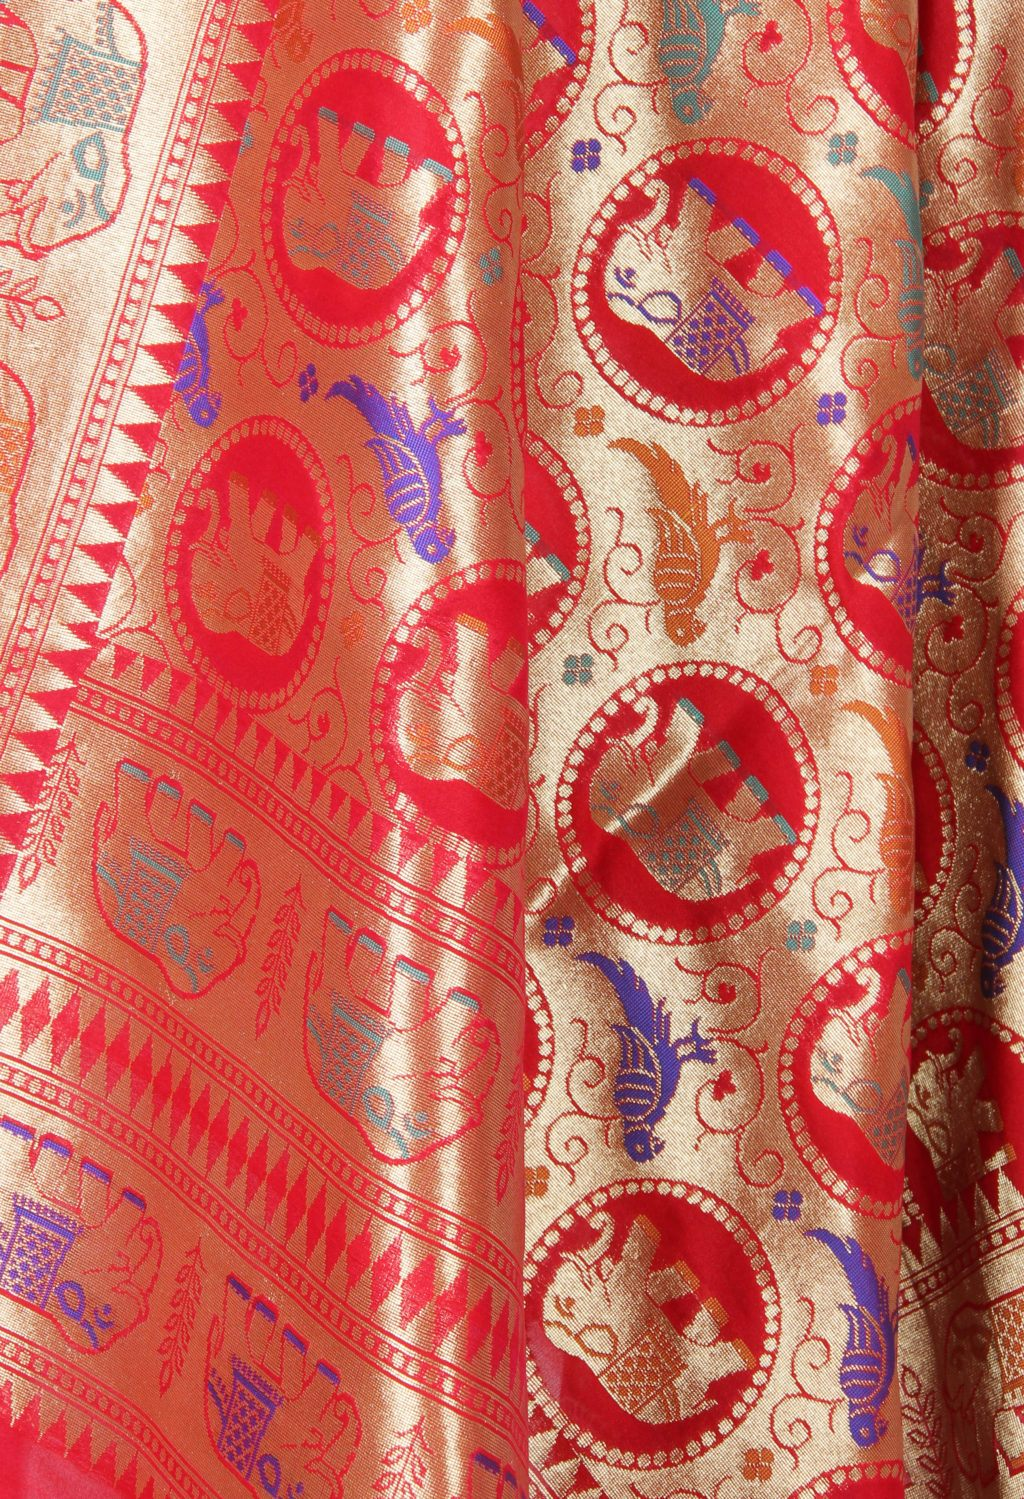 Red art silk Banarasi dupatta with meenedar elephant and parrot motifs (2) Close up